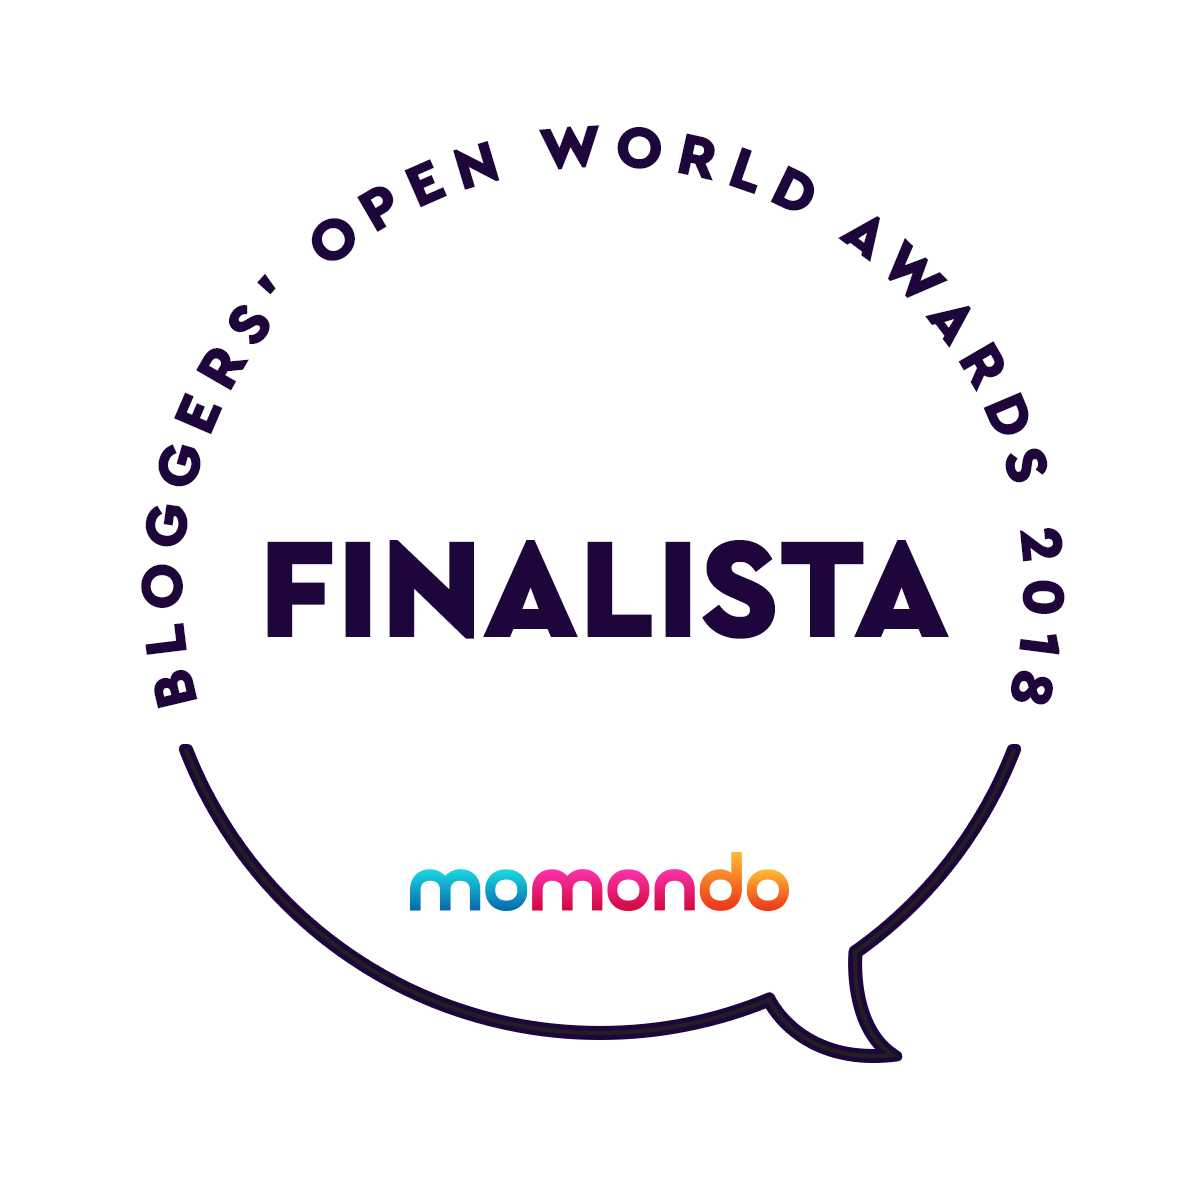 Bloggers Open World Awards 2018 Finalista